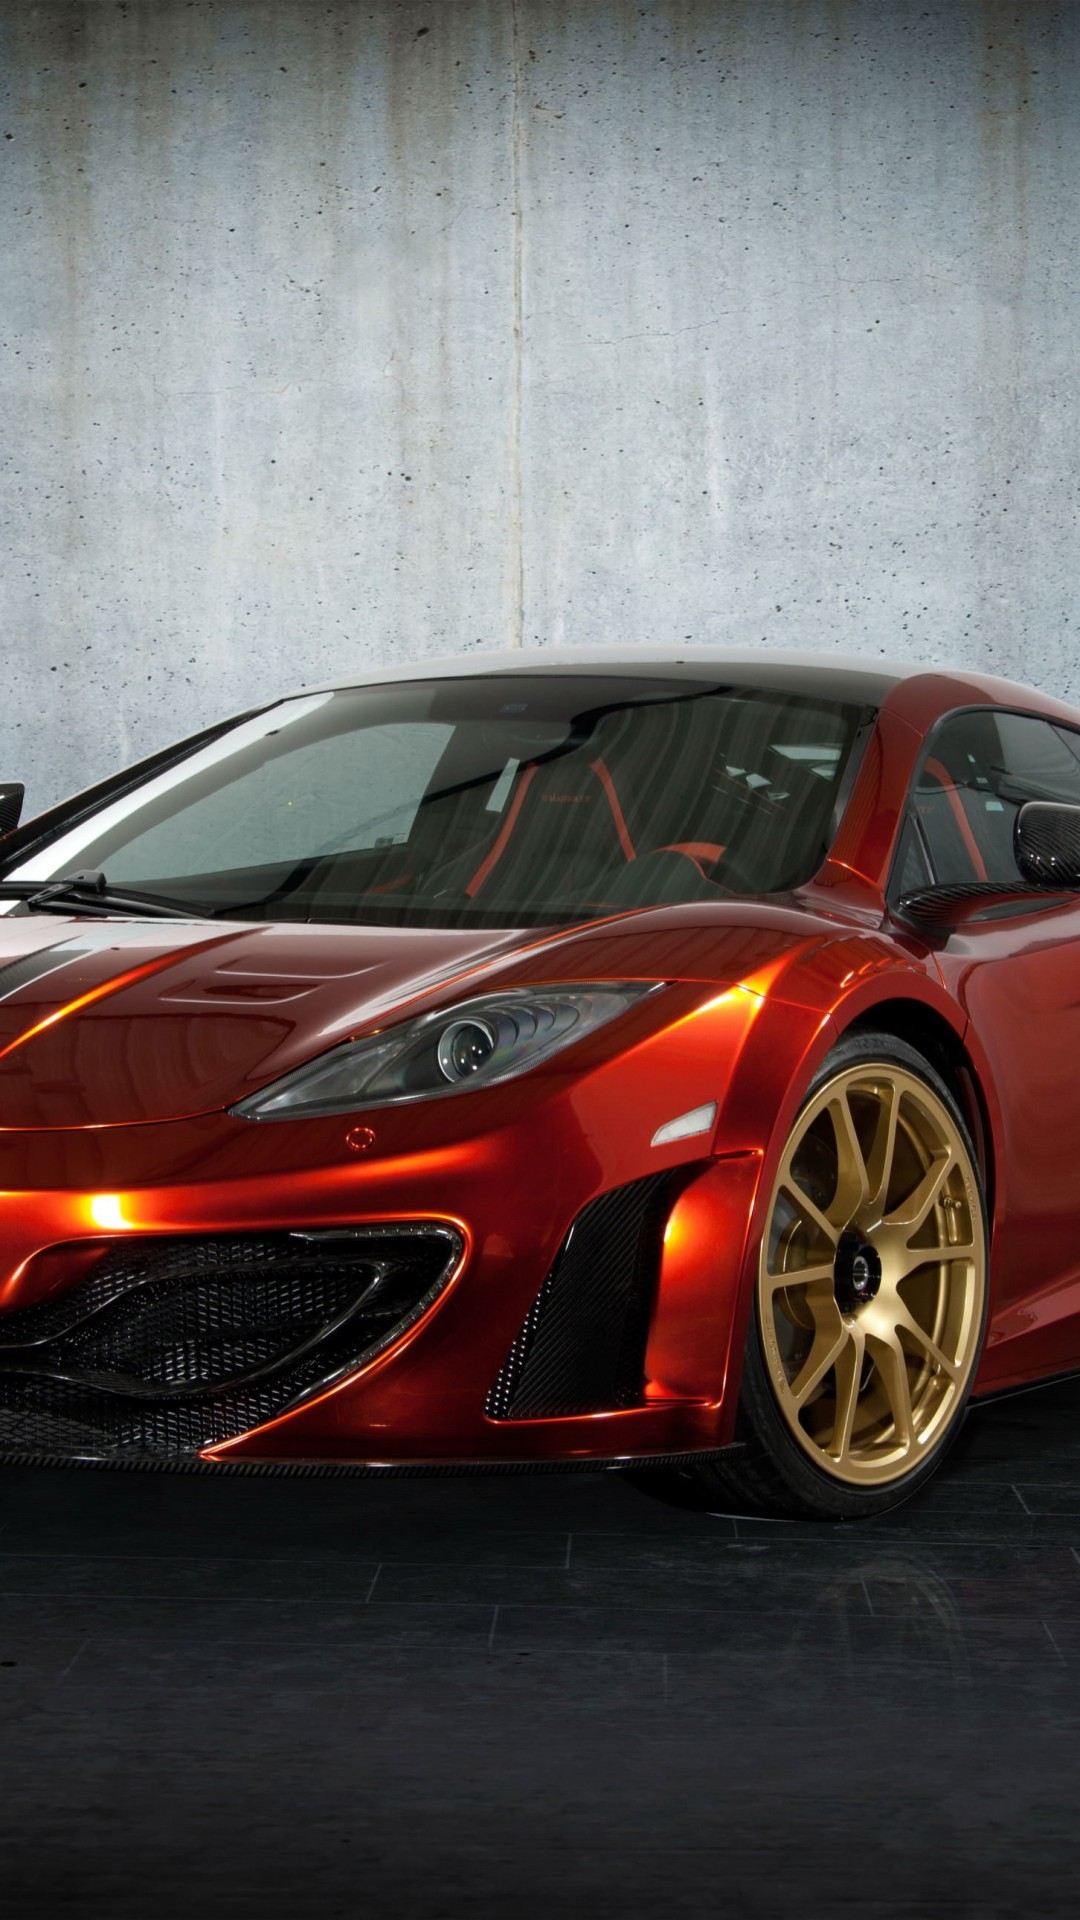 McLaren MP4-12Cf By Mansory Wallpaper for SAMSUNG Galaxy Note 3